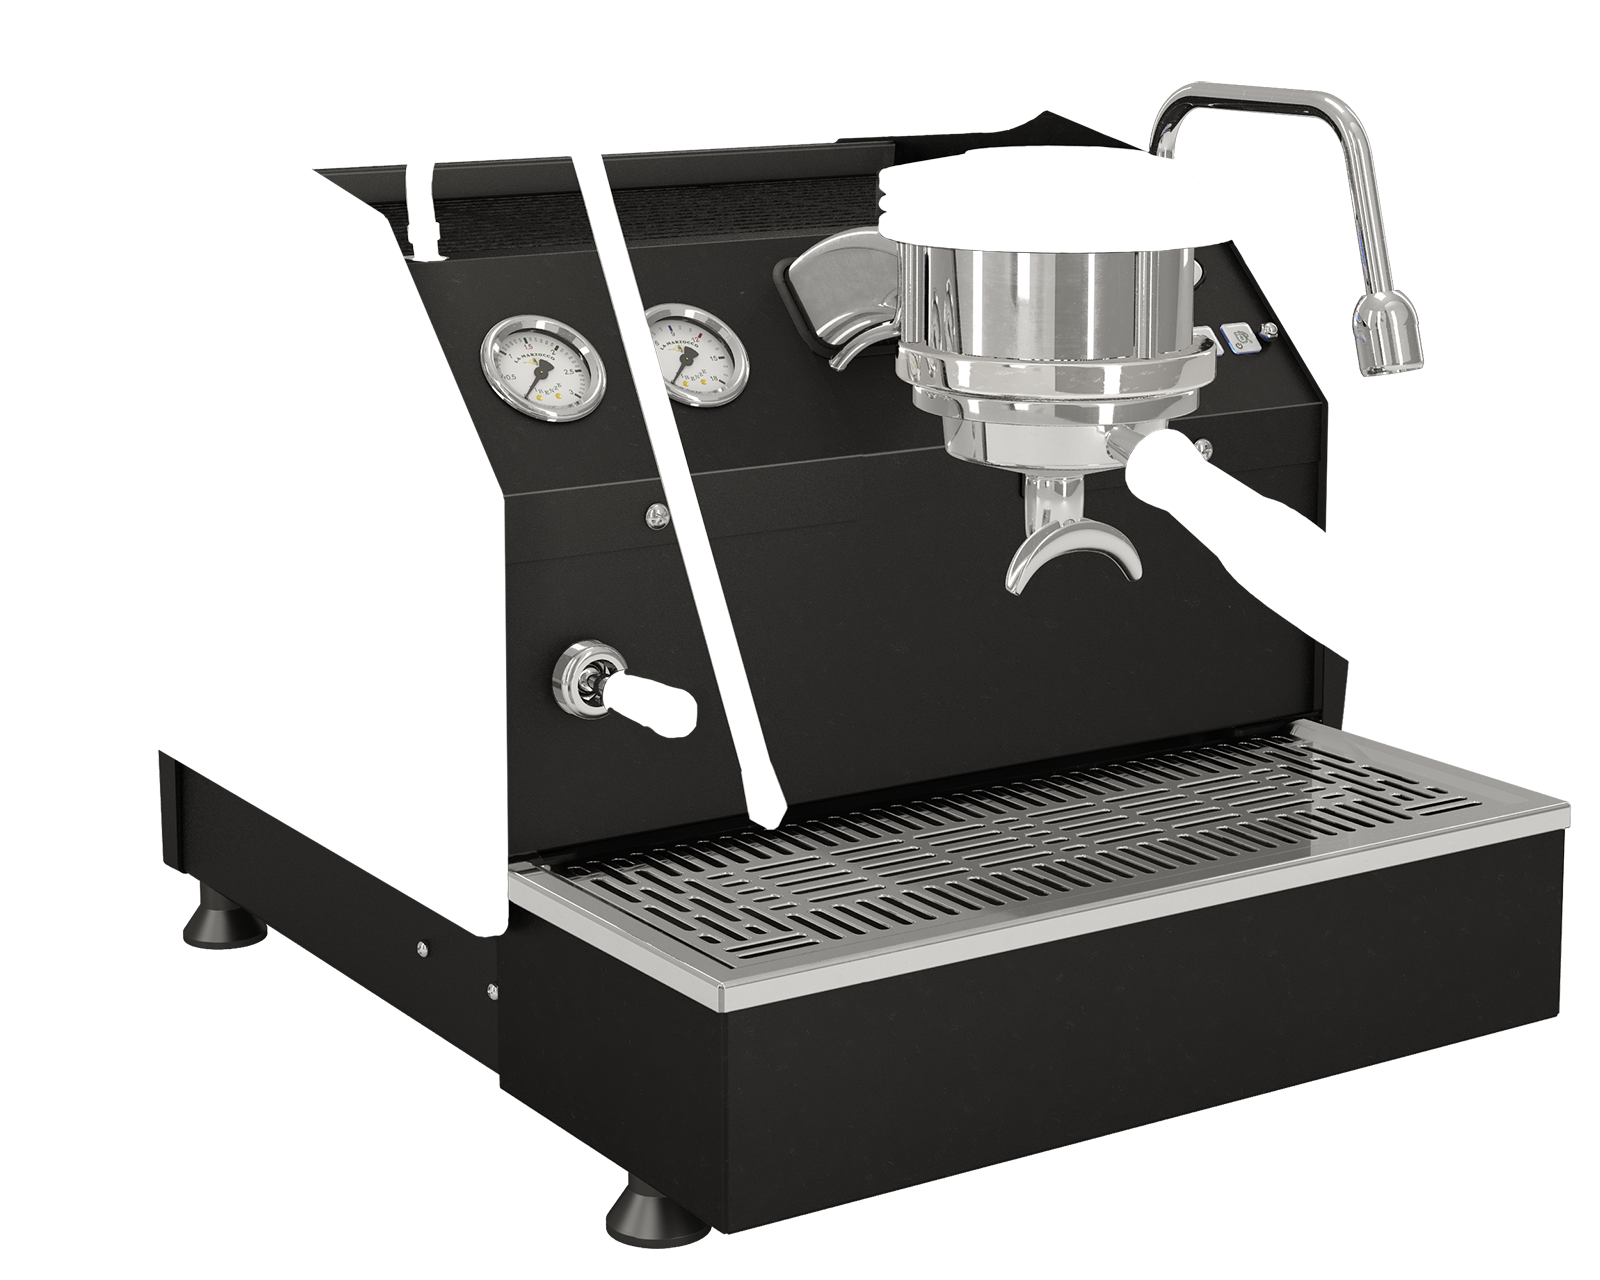 The La Marzocco GS3 puts nearly a century of espresso